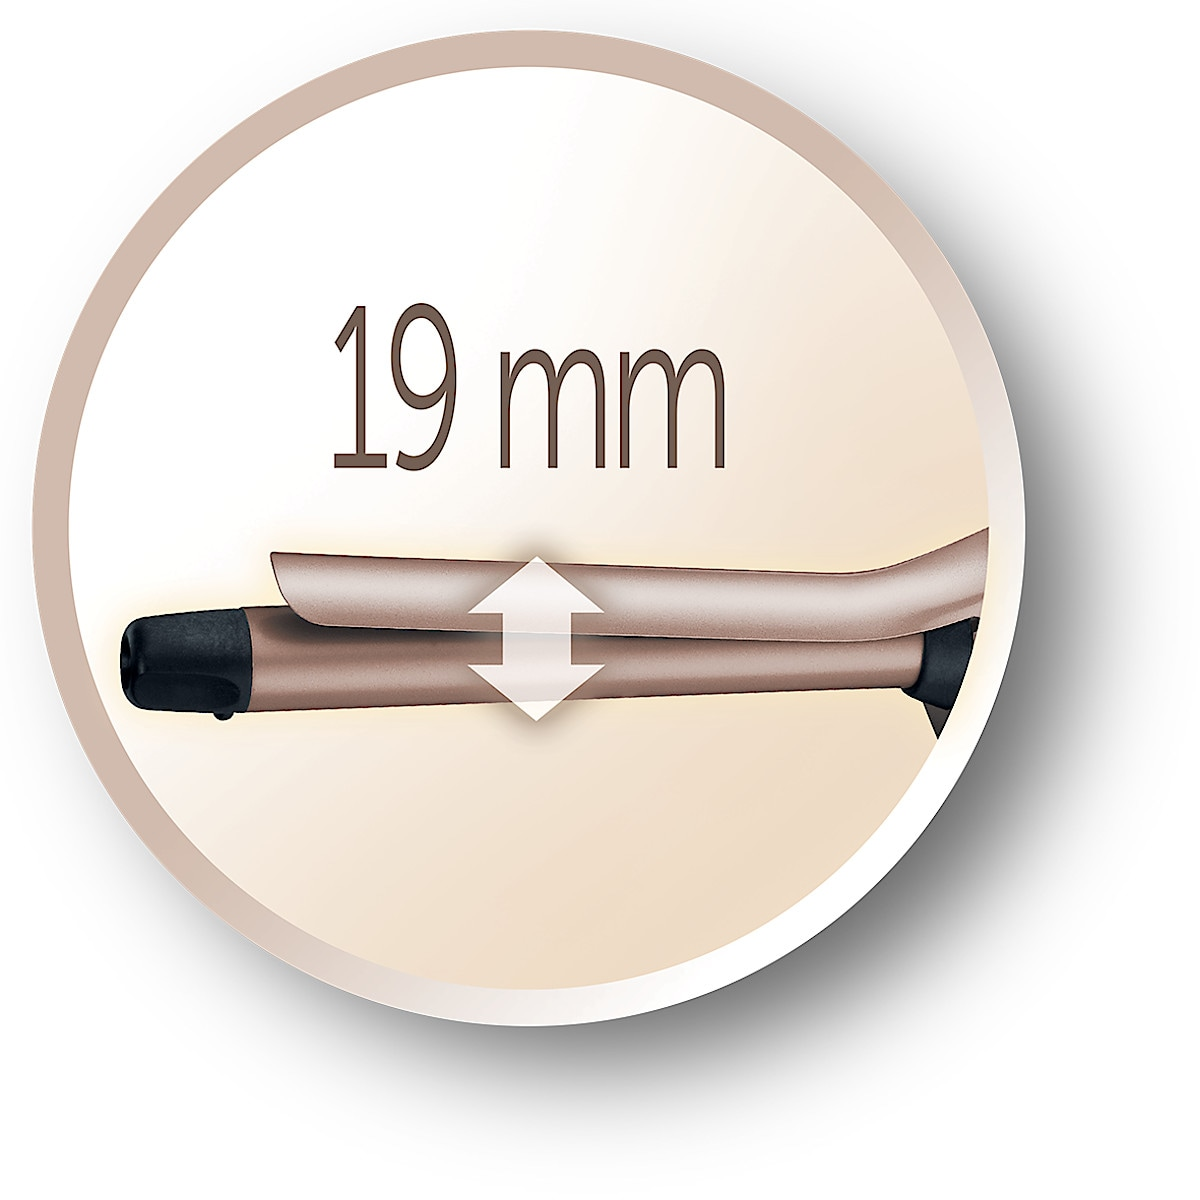 Locktång 19 mm, Remington Keratin Protect CI5318